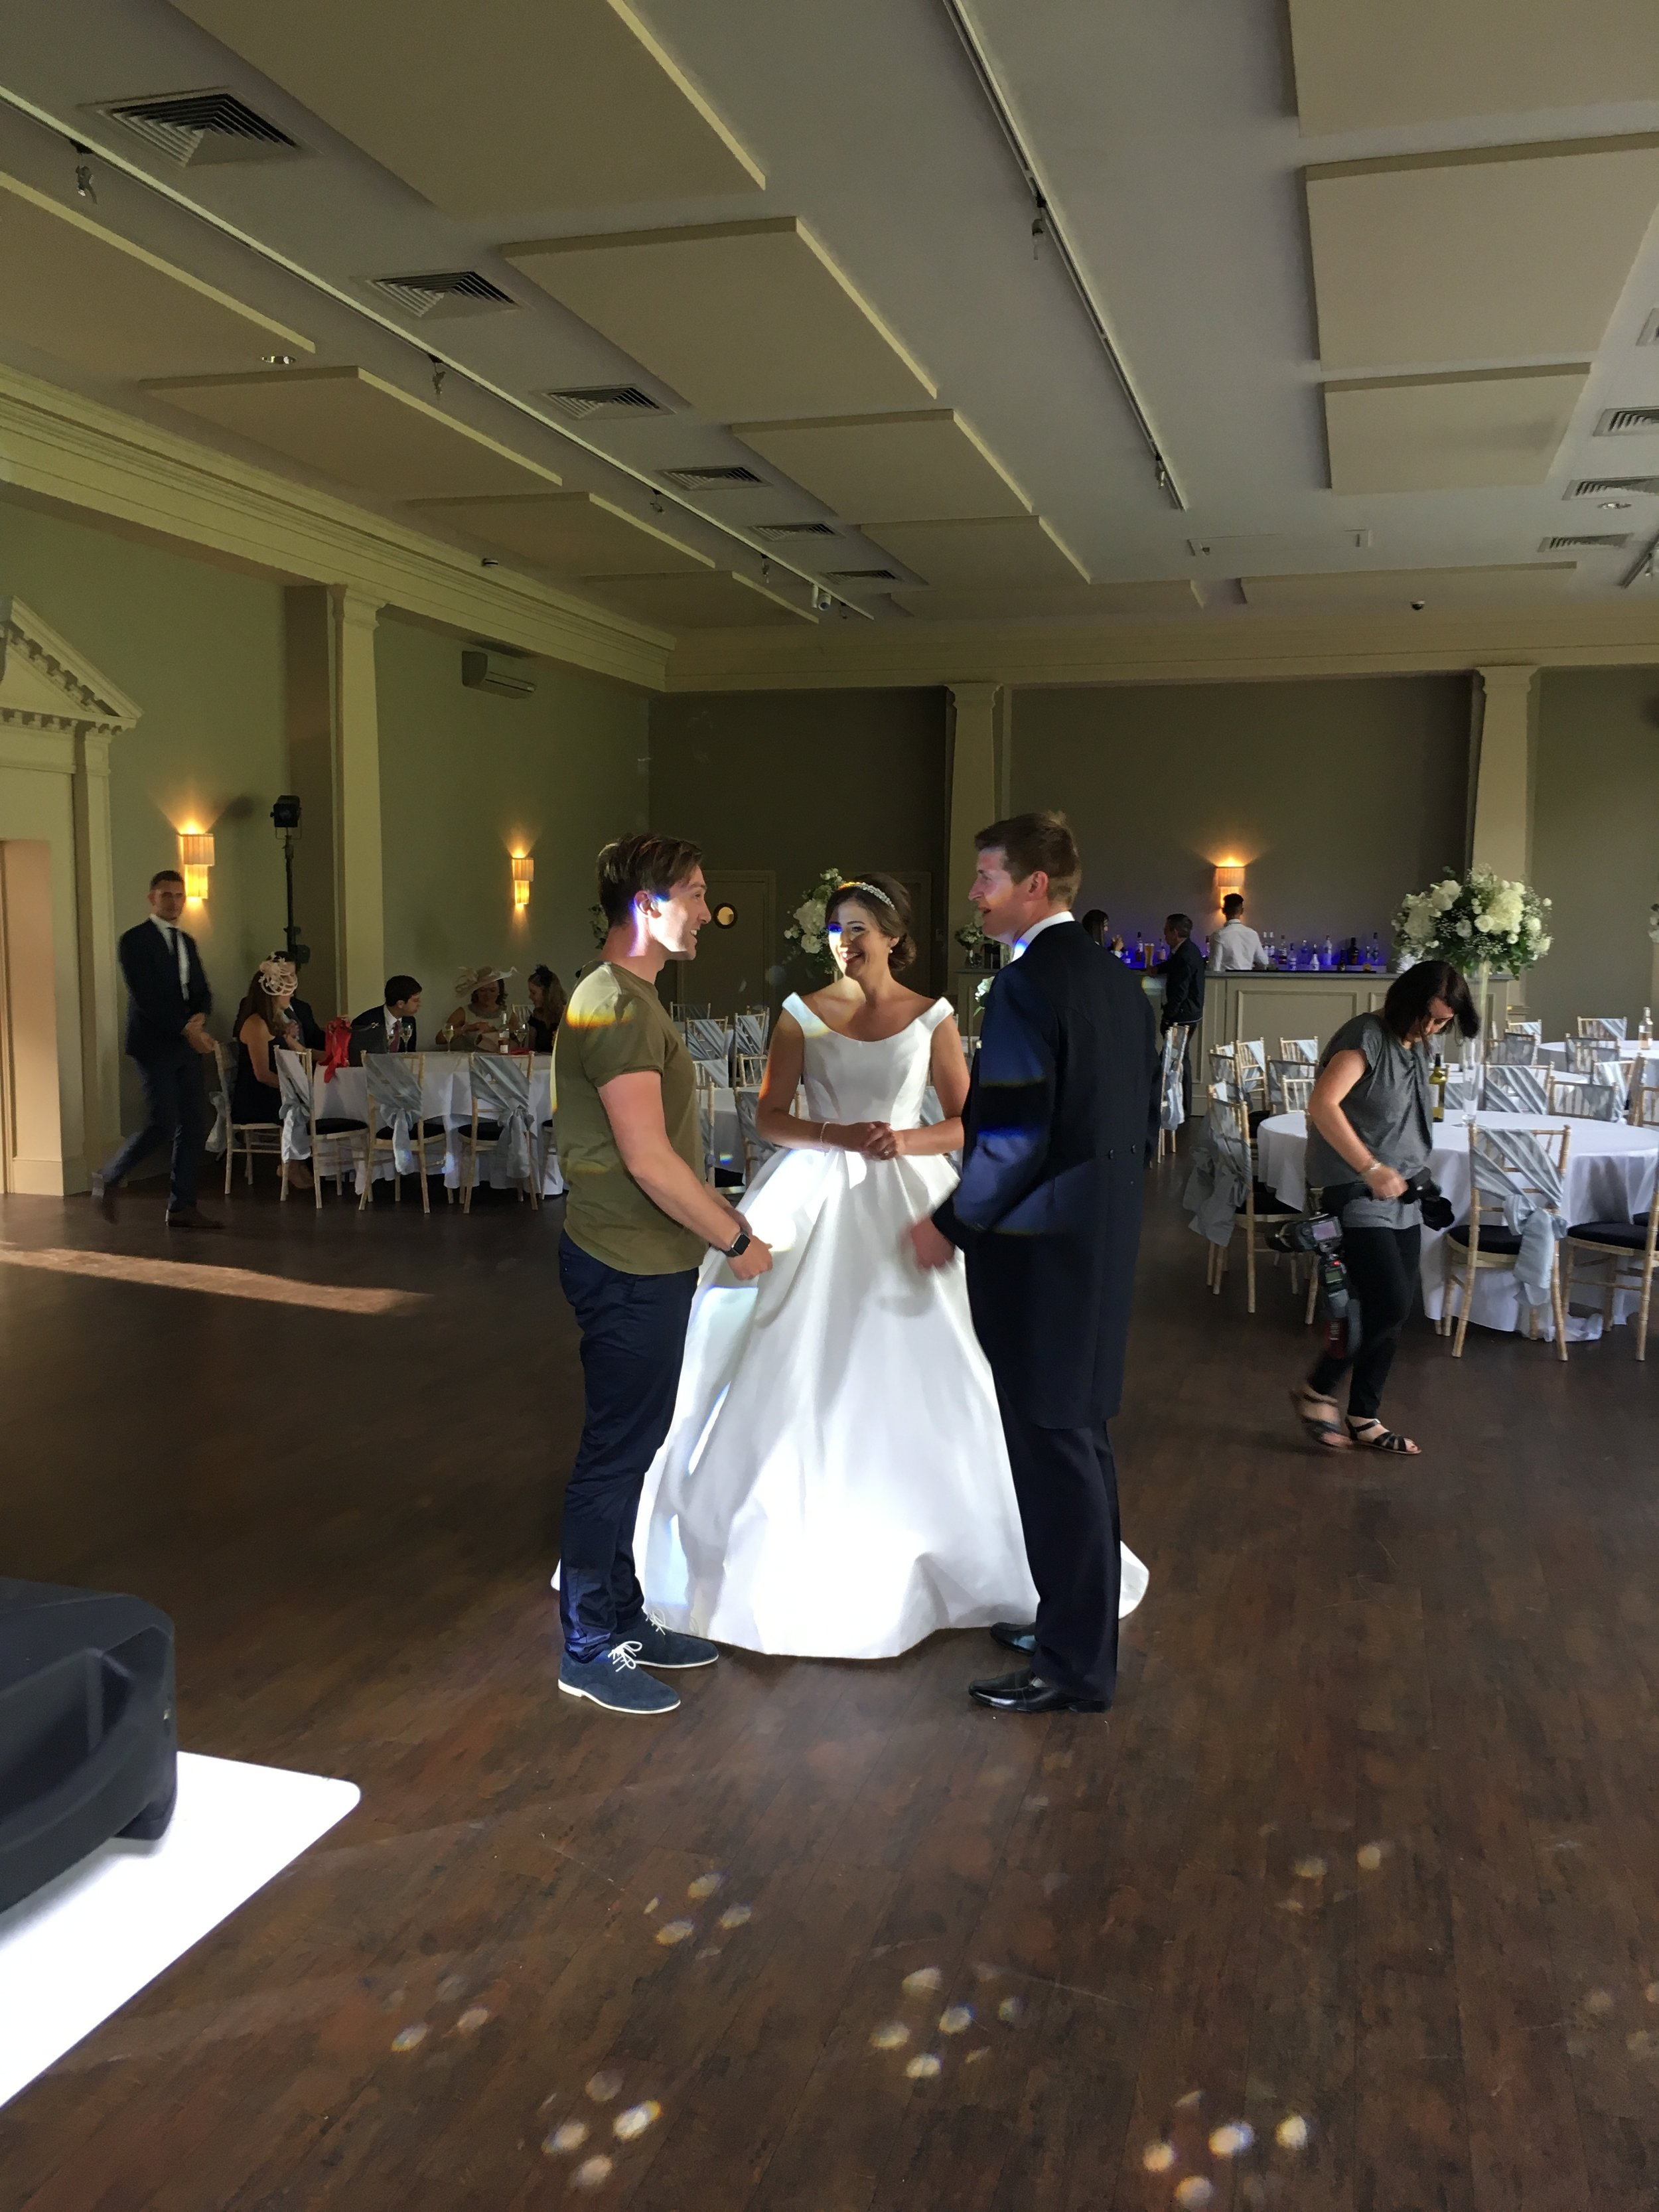 Front man, Adam Thomas, having a quick chat with the bride and groom before the evening's antics commenced!